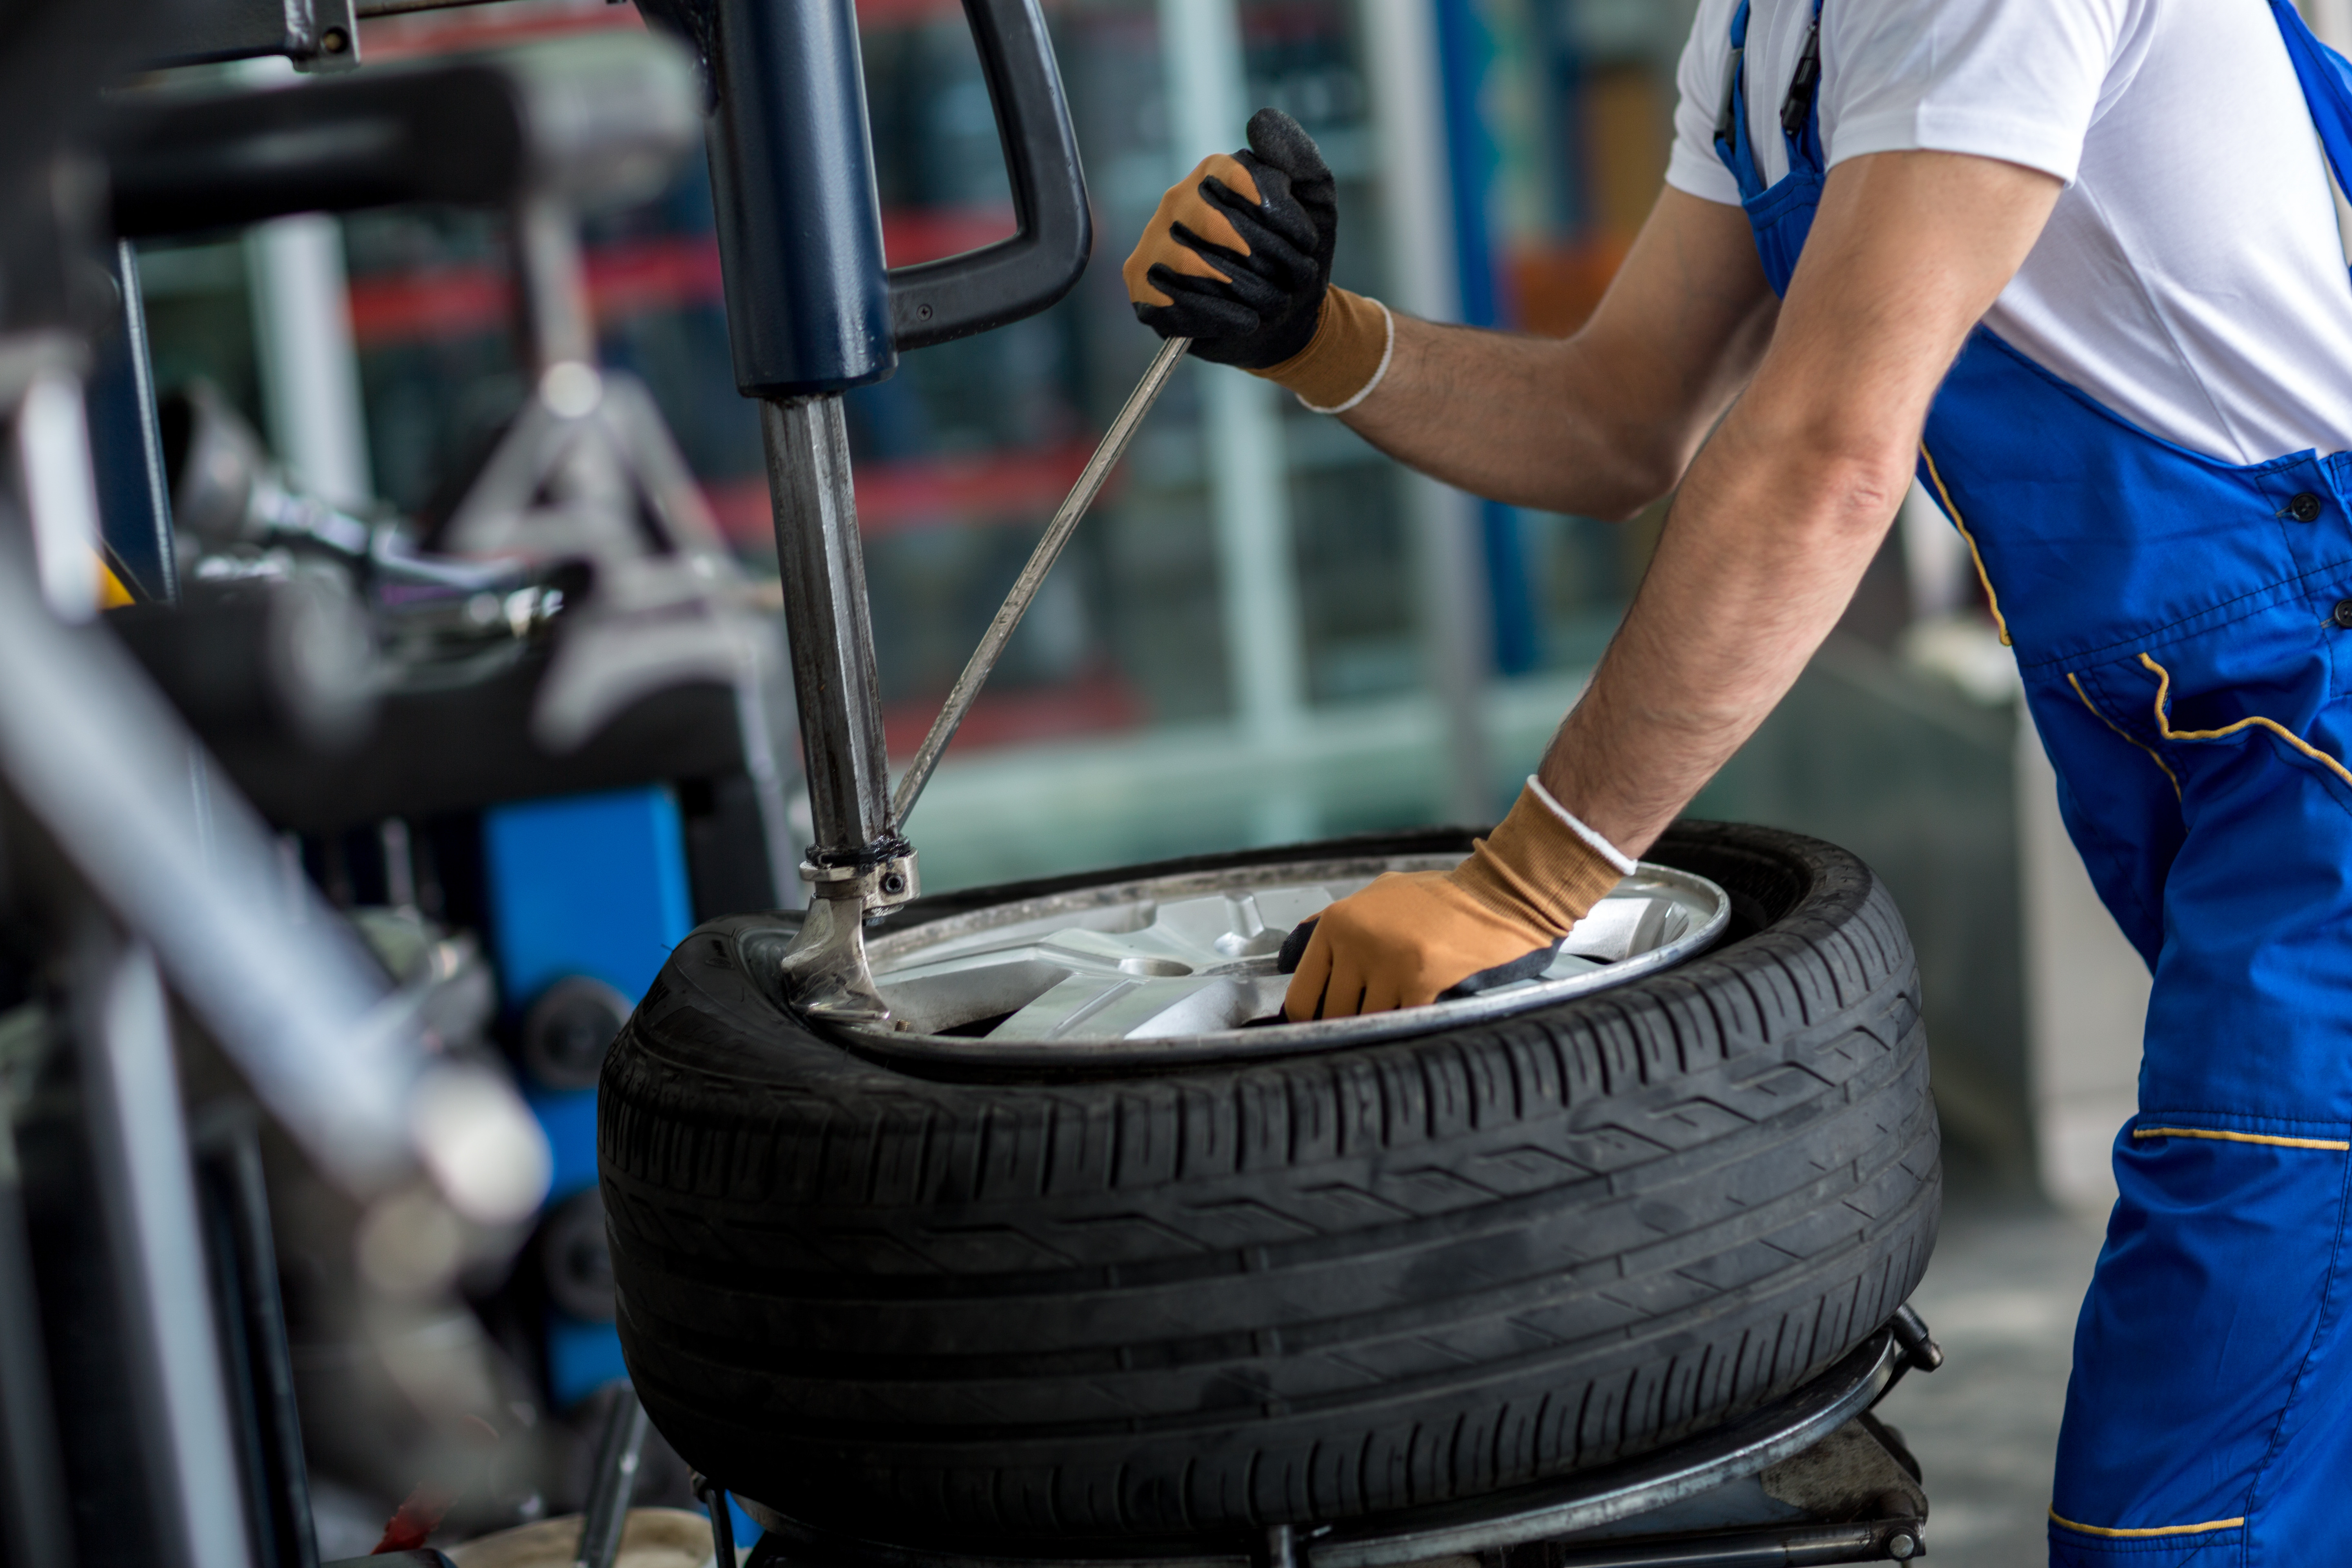 MOBILE TYRE CHANGE